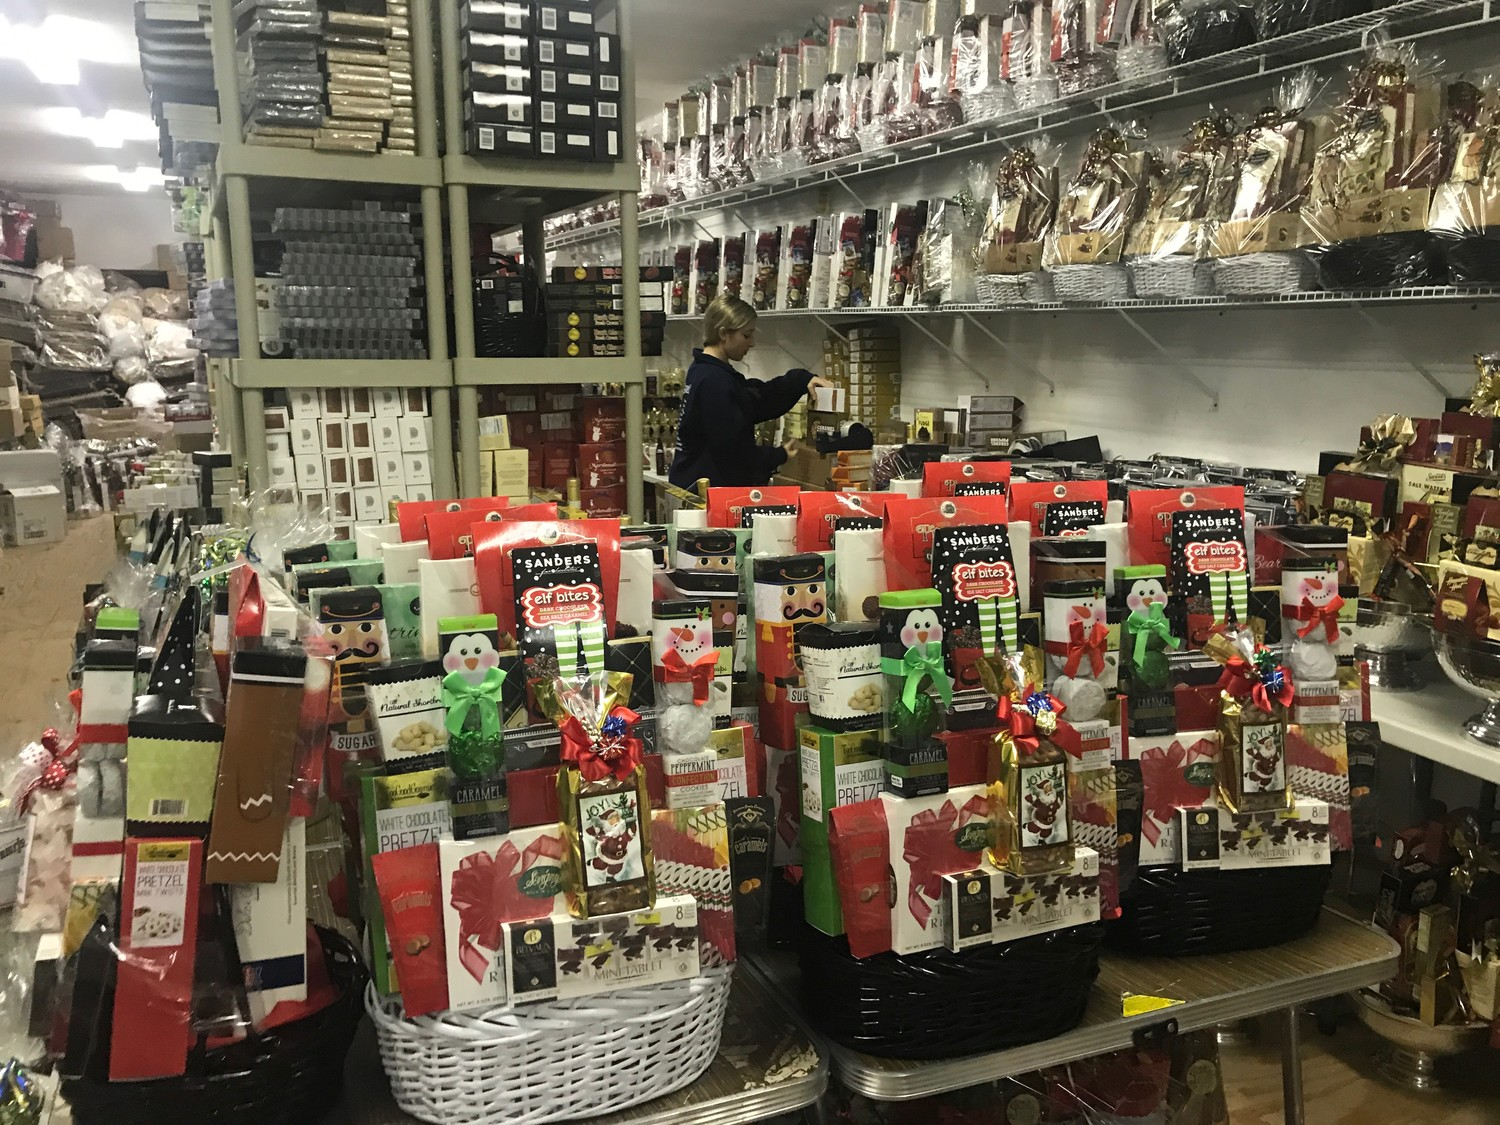 The Pampered Professional puts together a range of gift baskets during the holiday season and throughout the year for corporate and personal customers.